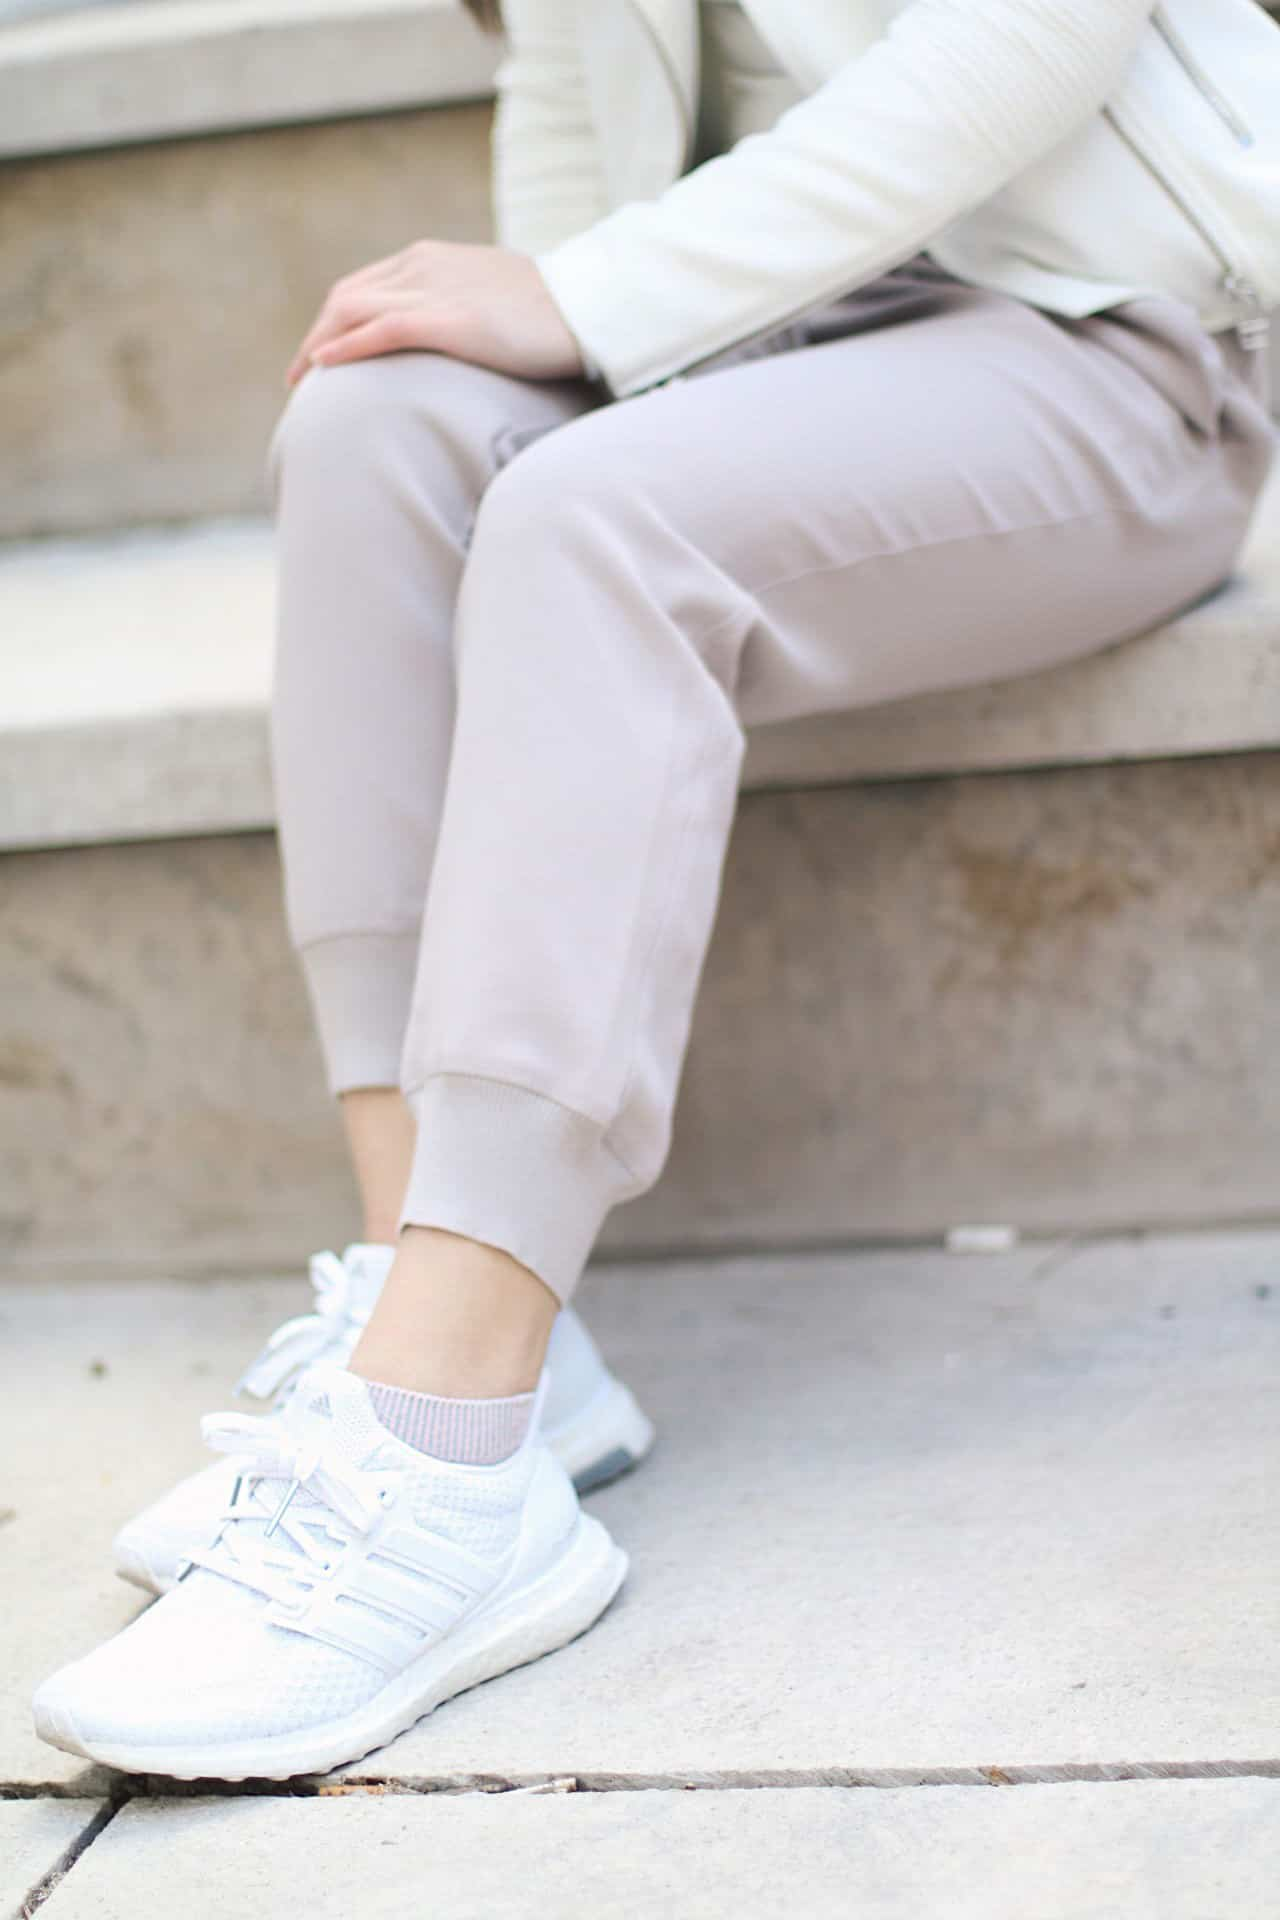 How to style white sneakers for spring weather   casual spring outfit ideas and inspiration   styling Adidas triple white Ultra Boost sneakers   Diary of a Toronto Girl, a Canadian lifestyle blog